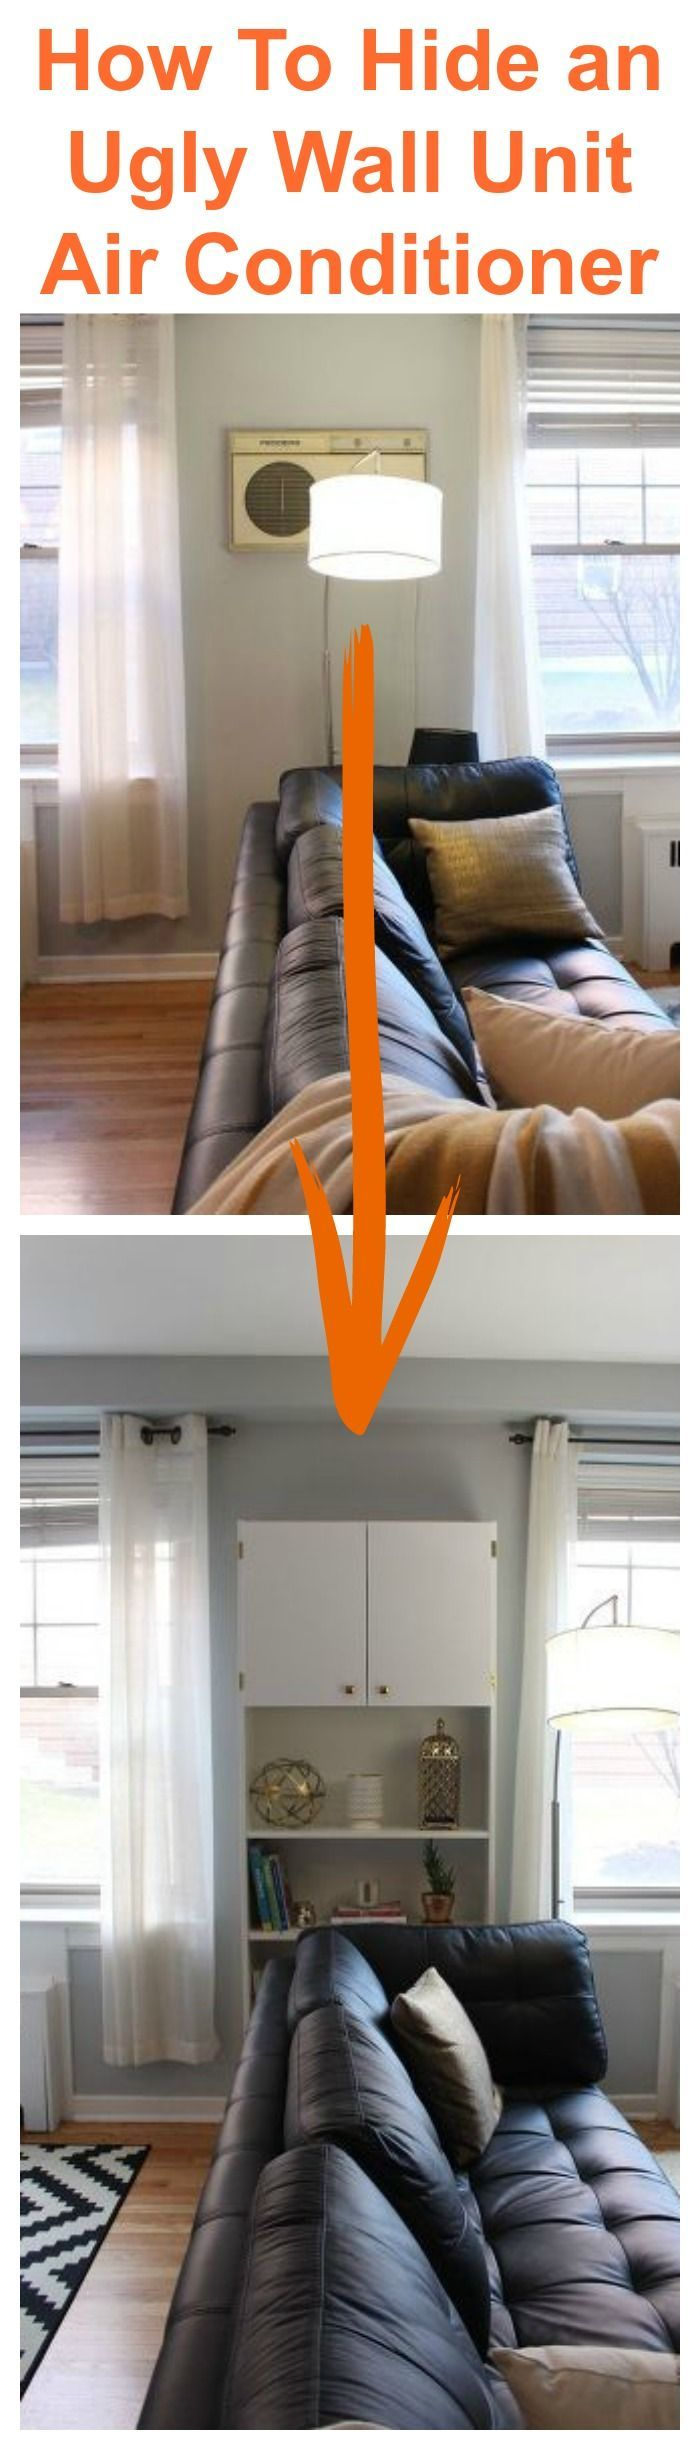 This is such a genius idea to hide an ugly wall unit air ...